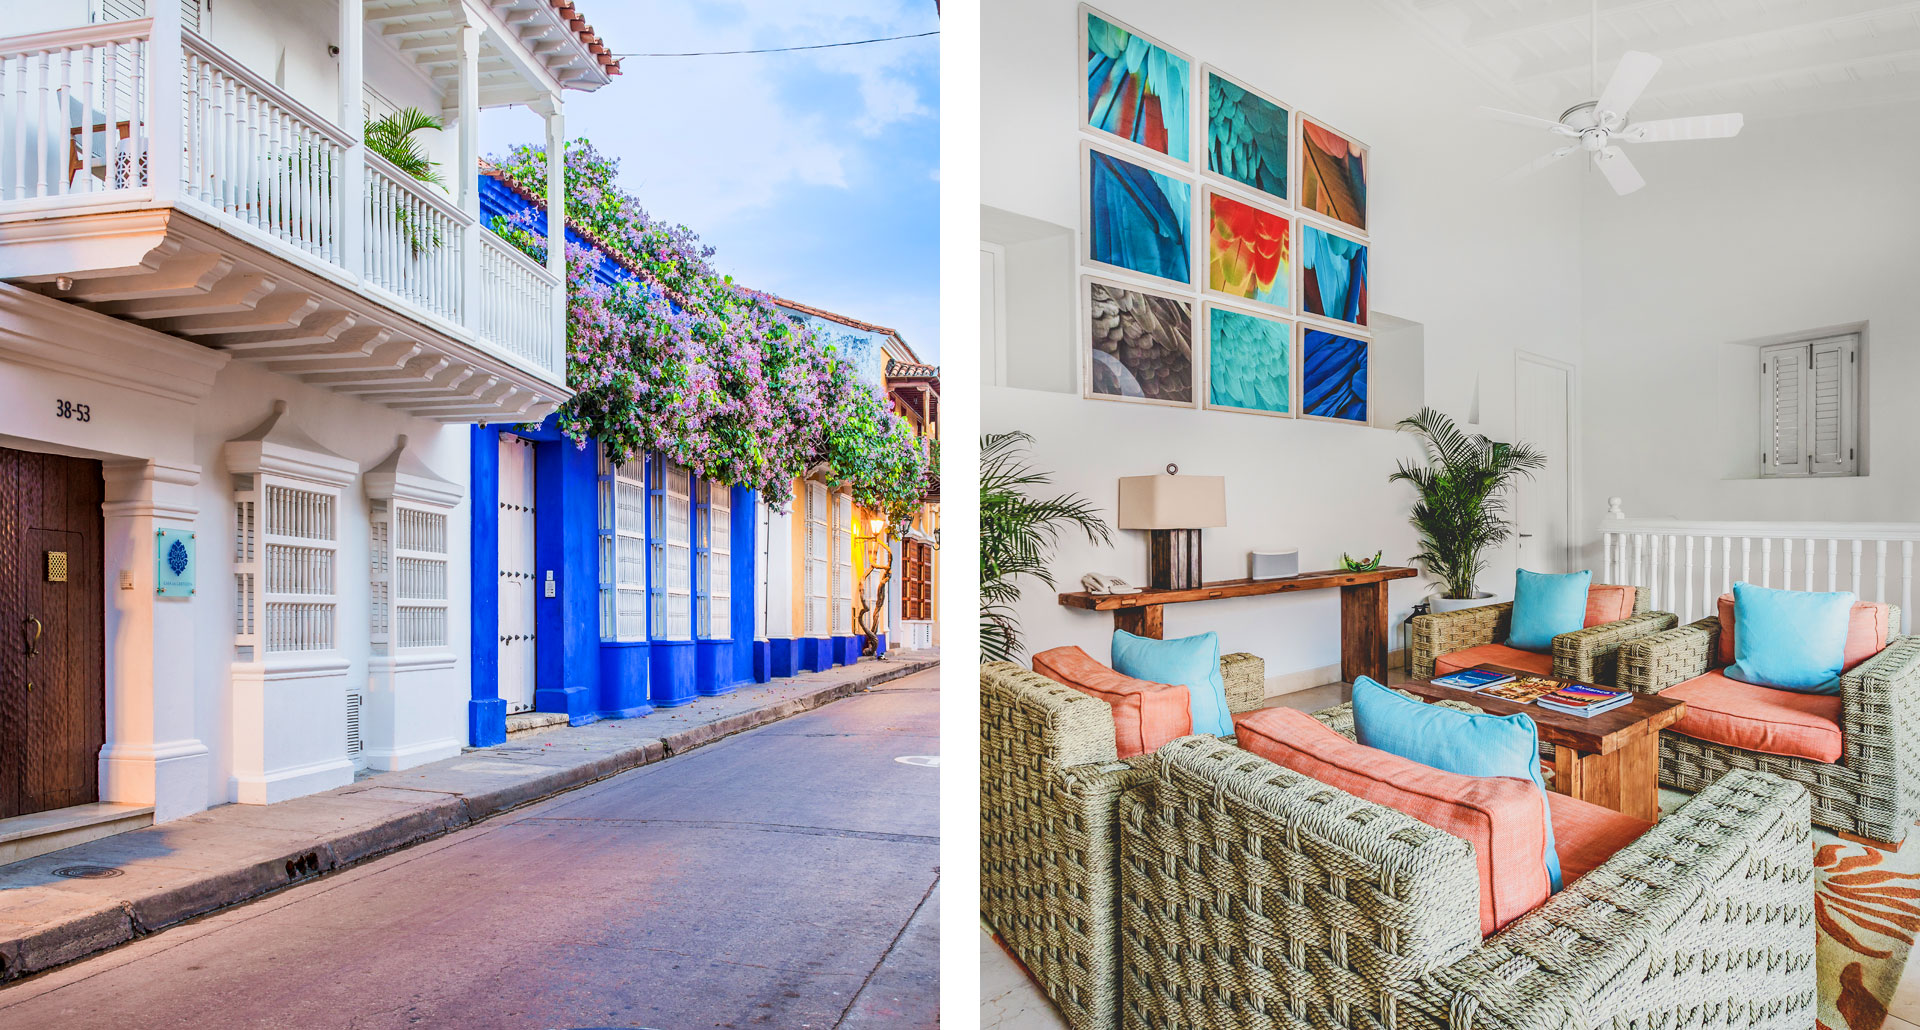 Casa la Cartujita - boutique hotel in Cartagena